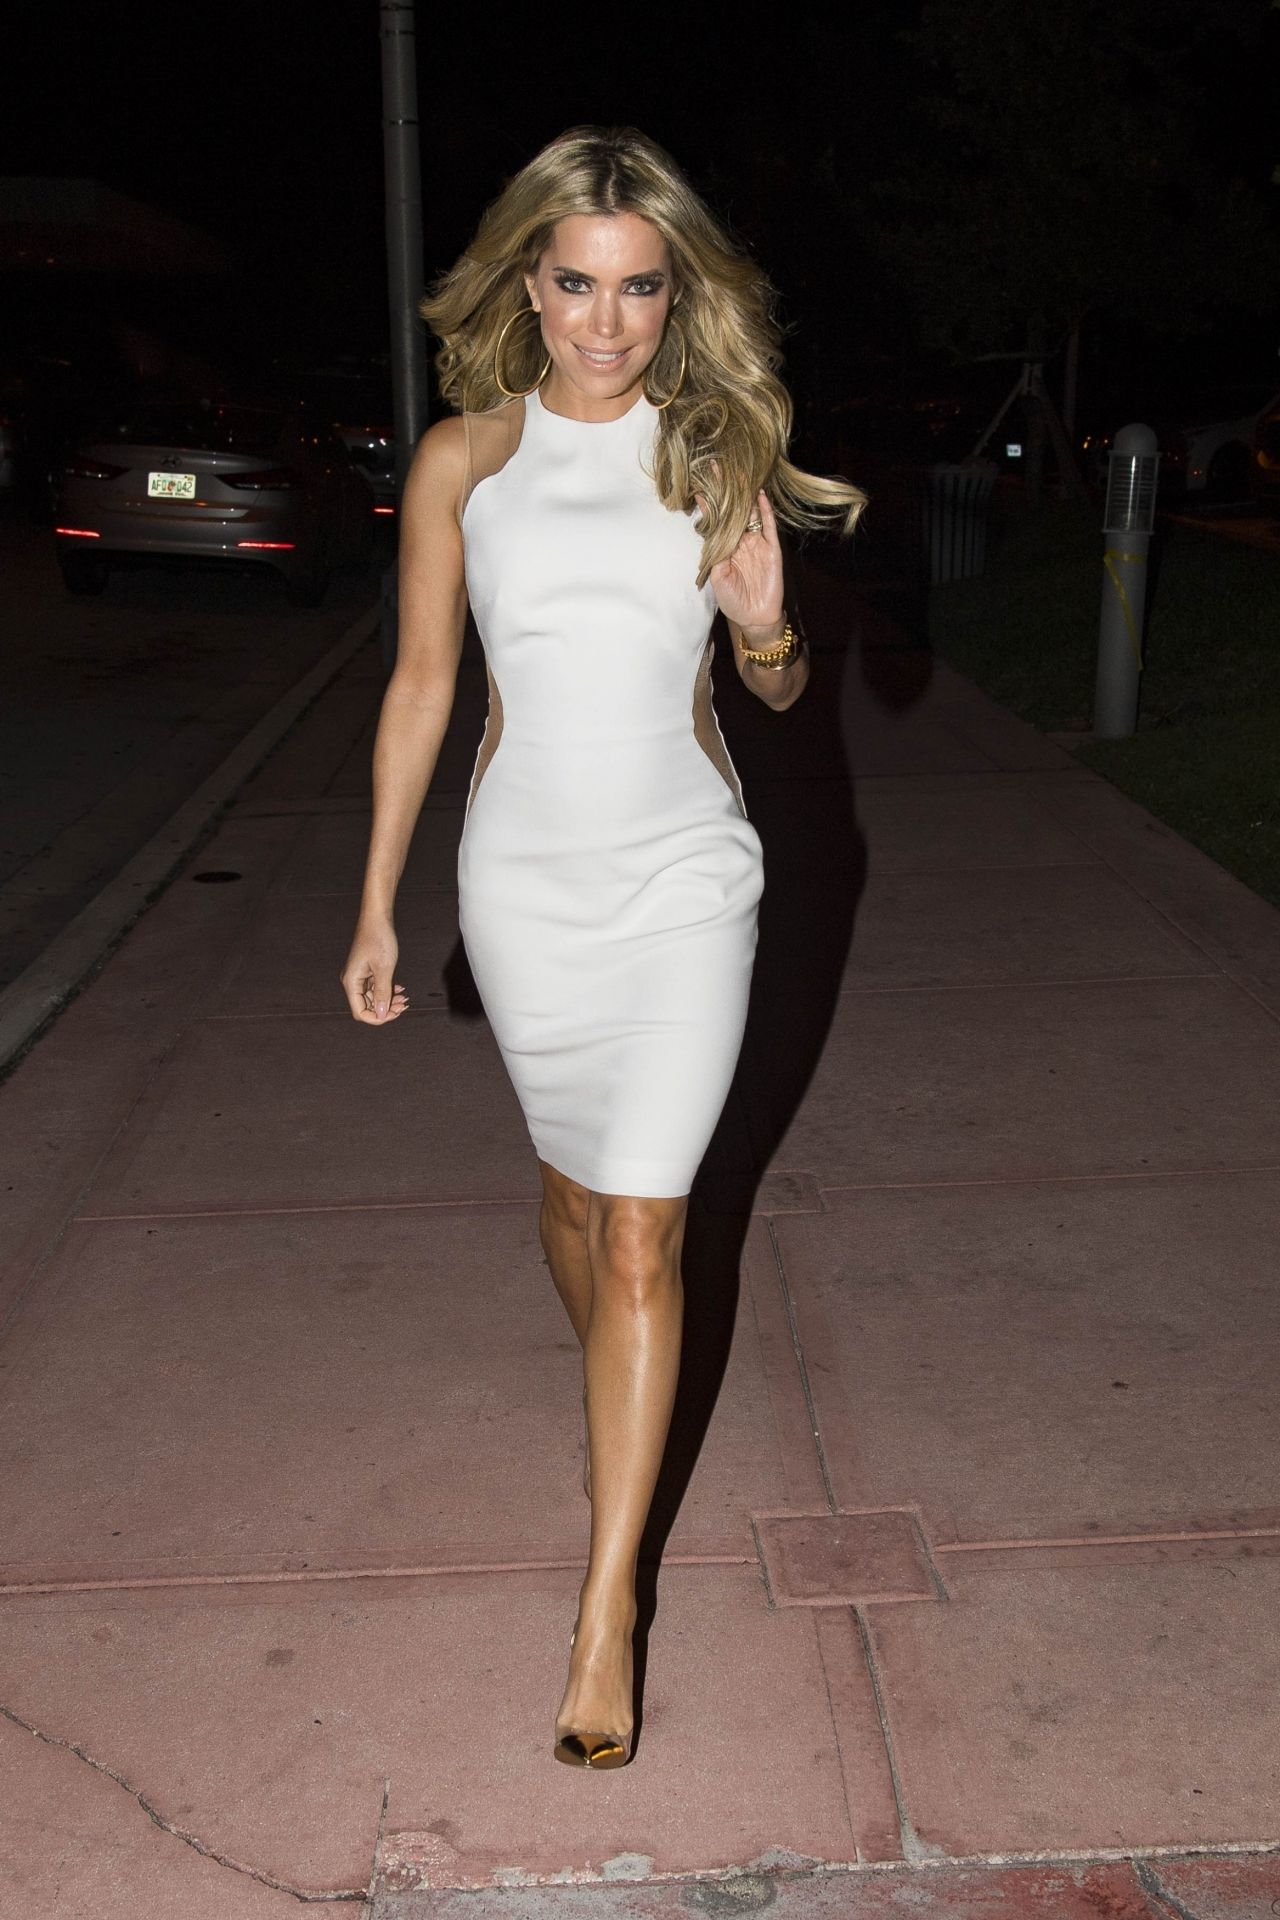 Sylvie Meis In White Dress Night Out In Miami Beach